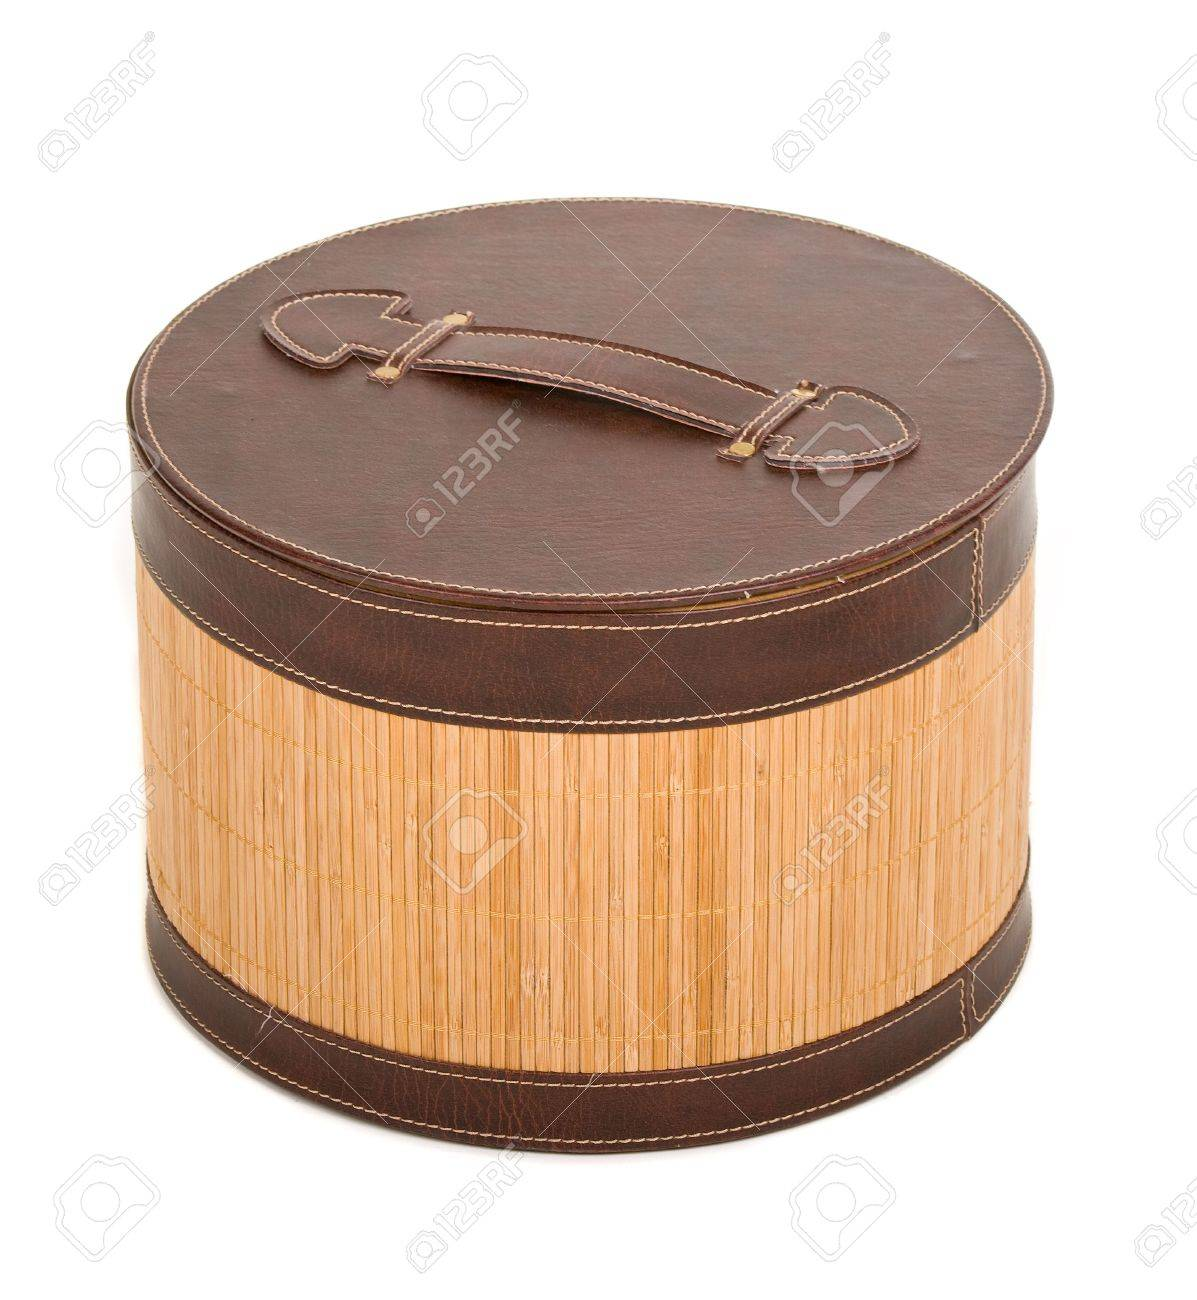 Fancy Wooden Box Over White Background